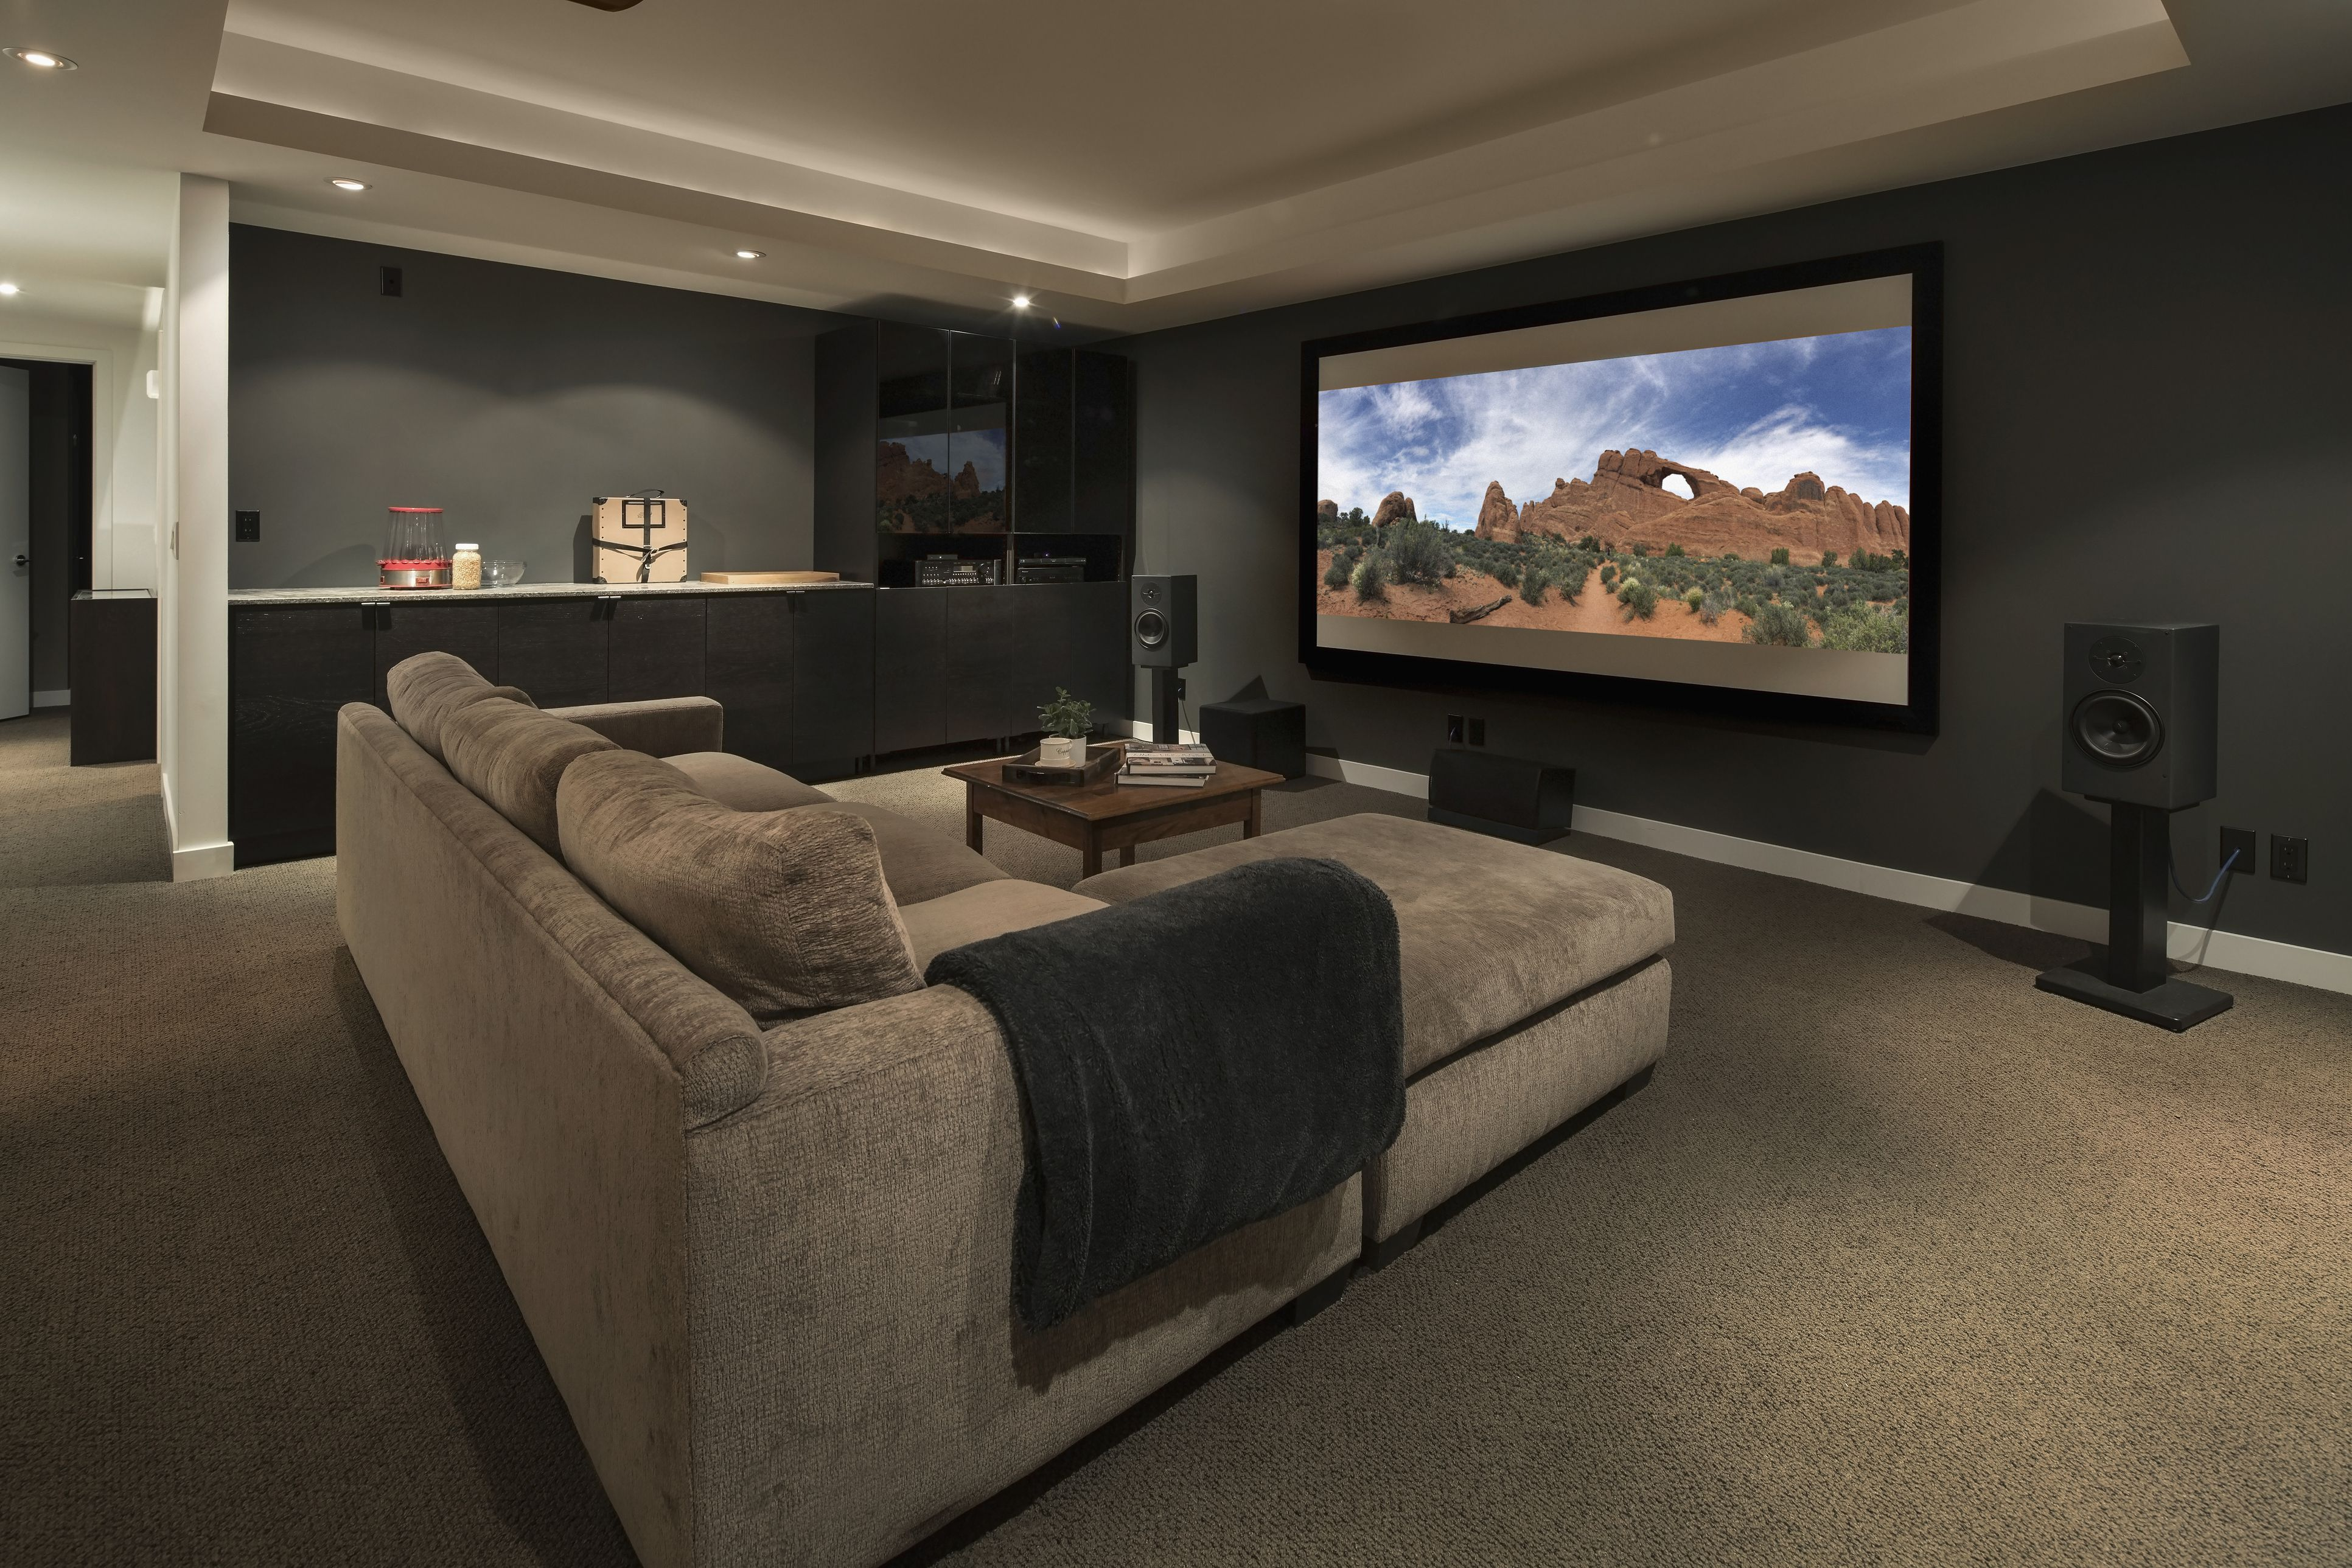 How Much Does A Home Theater Setup Cost